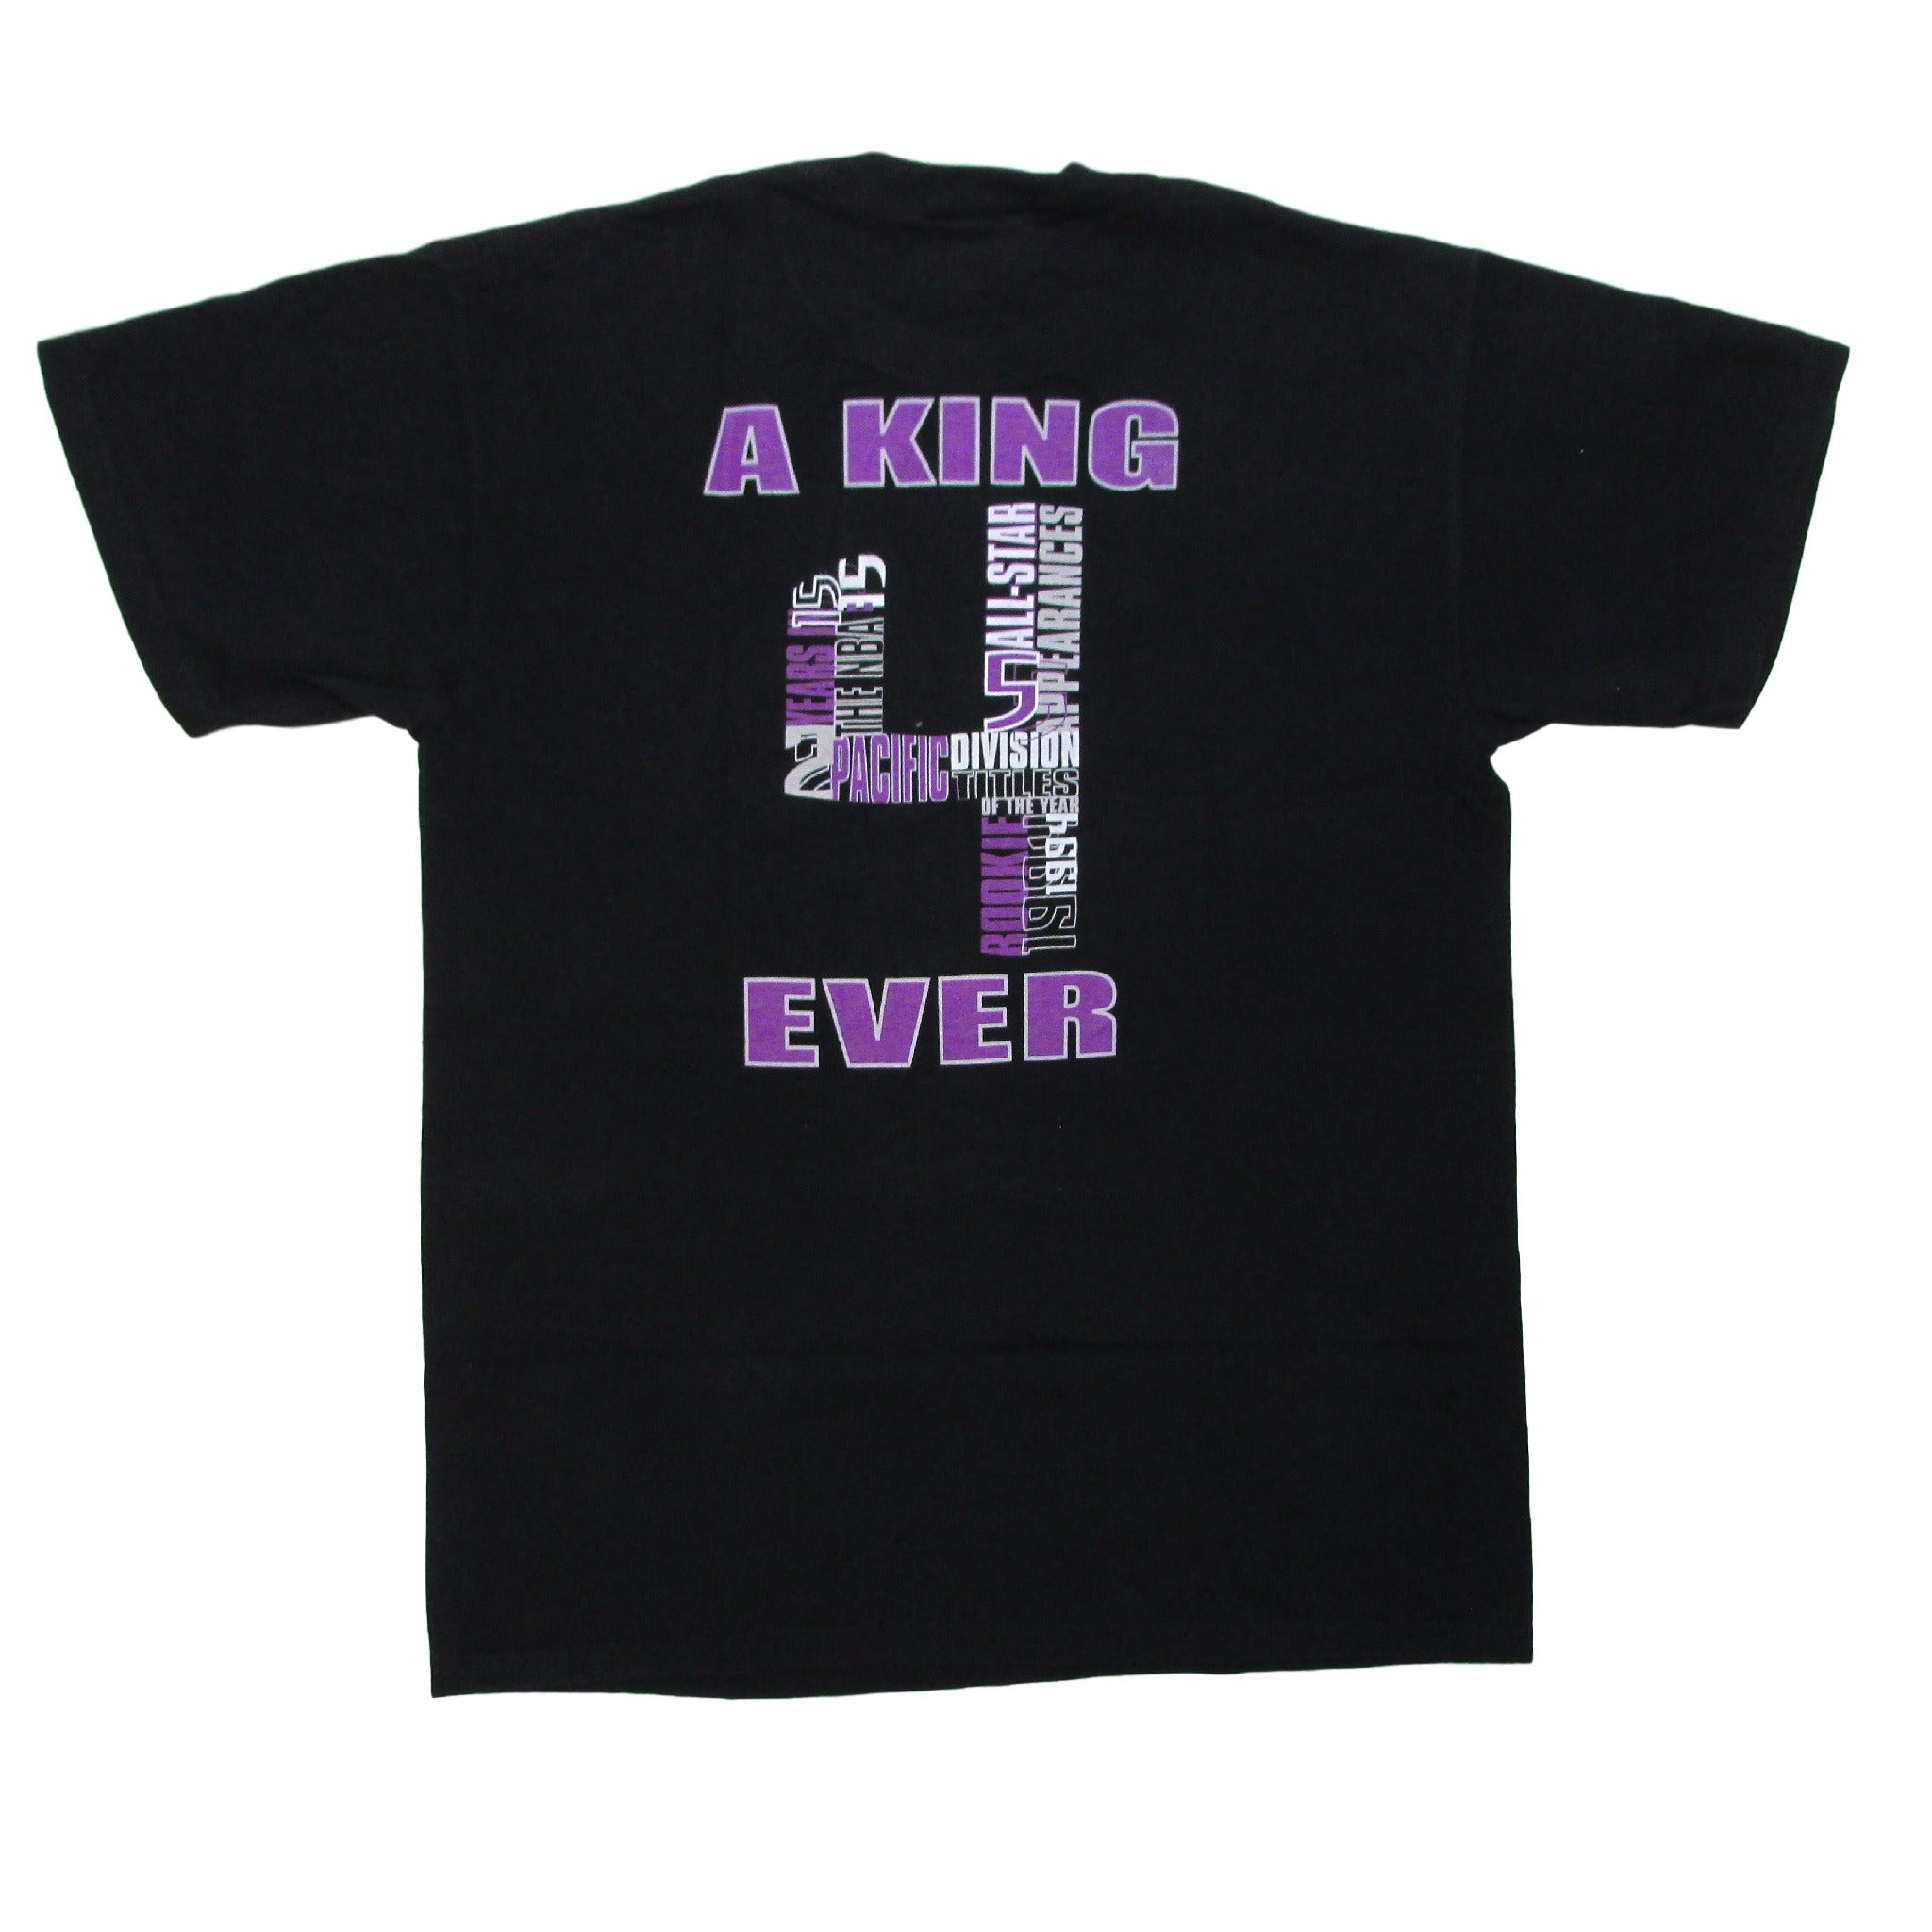 Sacramento Kings Chris Webber Jersey Retirement T-Shirt Sz M